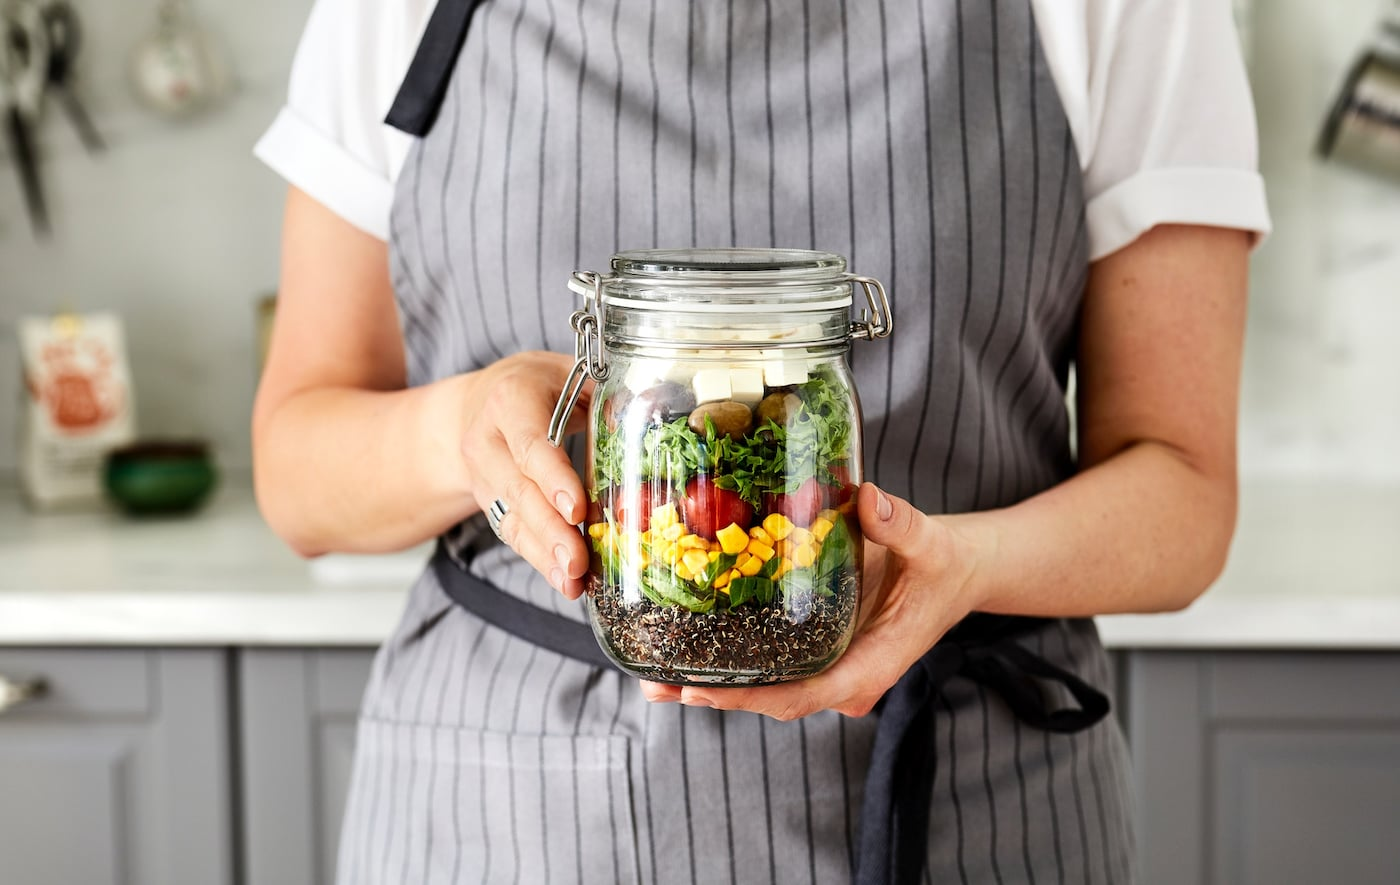 Lunch ideas to take to work